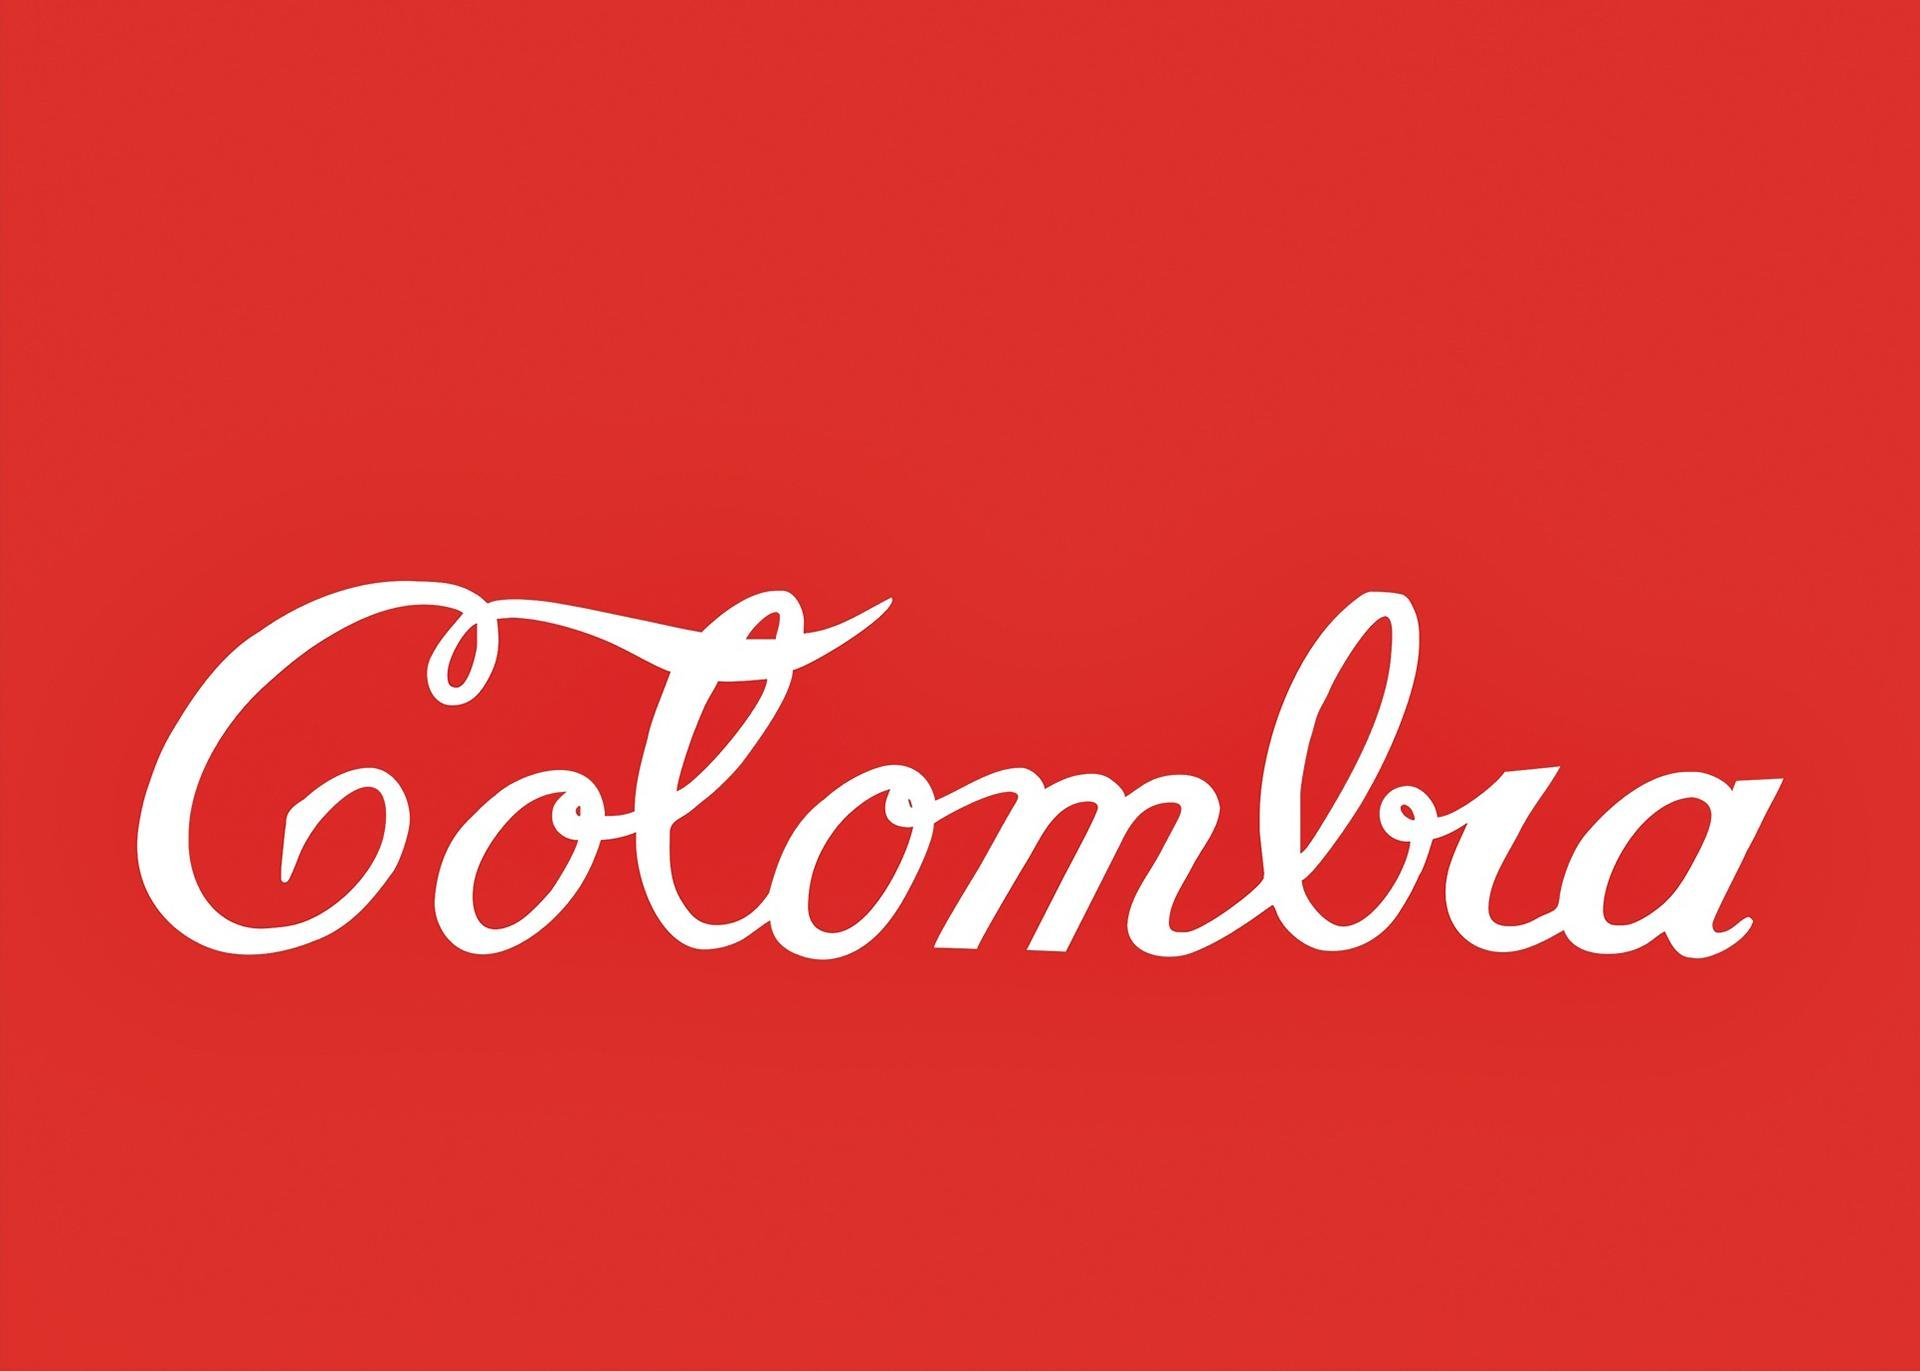 Antonio Caro, Colombia Coca-Cola, 1976. Enamel on sheet metal, edition 11/ 25, 19.5 x 27.5 inches (49.53 x 69.85 x 2.86 cm). Collection of the MIT List Visual Arts Center, Cambridge, Massachusetts. Purchased with funds from the Alan May Endowment. Image courtesy of the artist and Casas Riegner, Bogota, Colombia. © Antonio Caro.